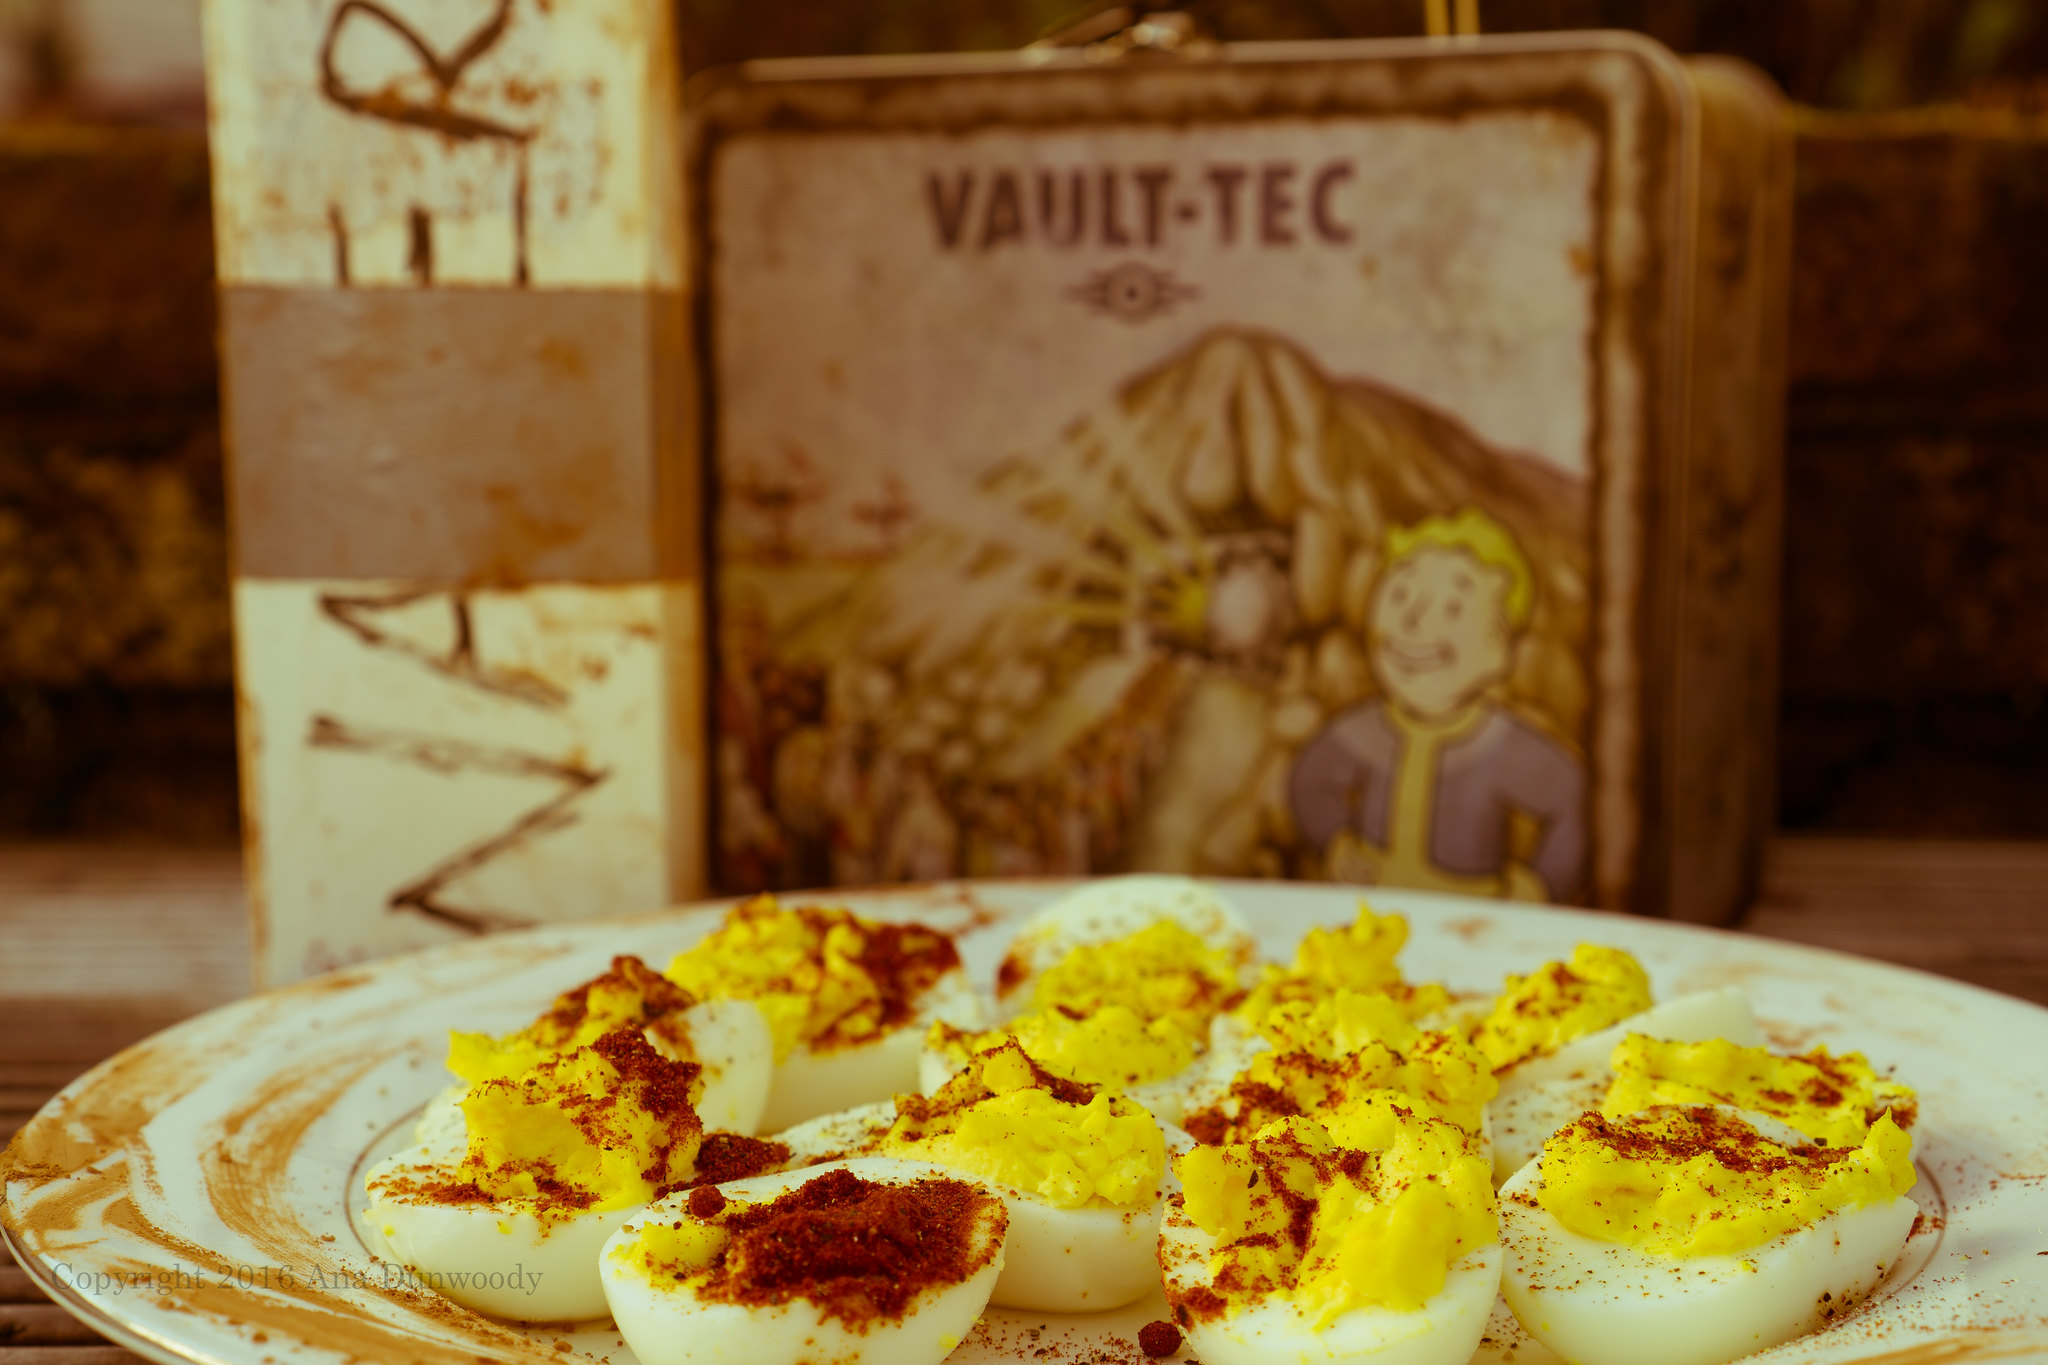 Fallout 4 Meal - Dirty Water and Yum Yum Deviled Eggs